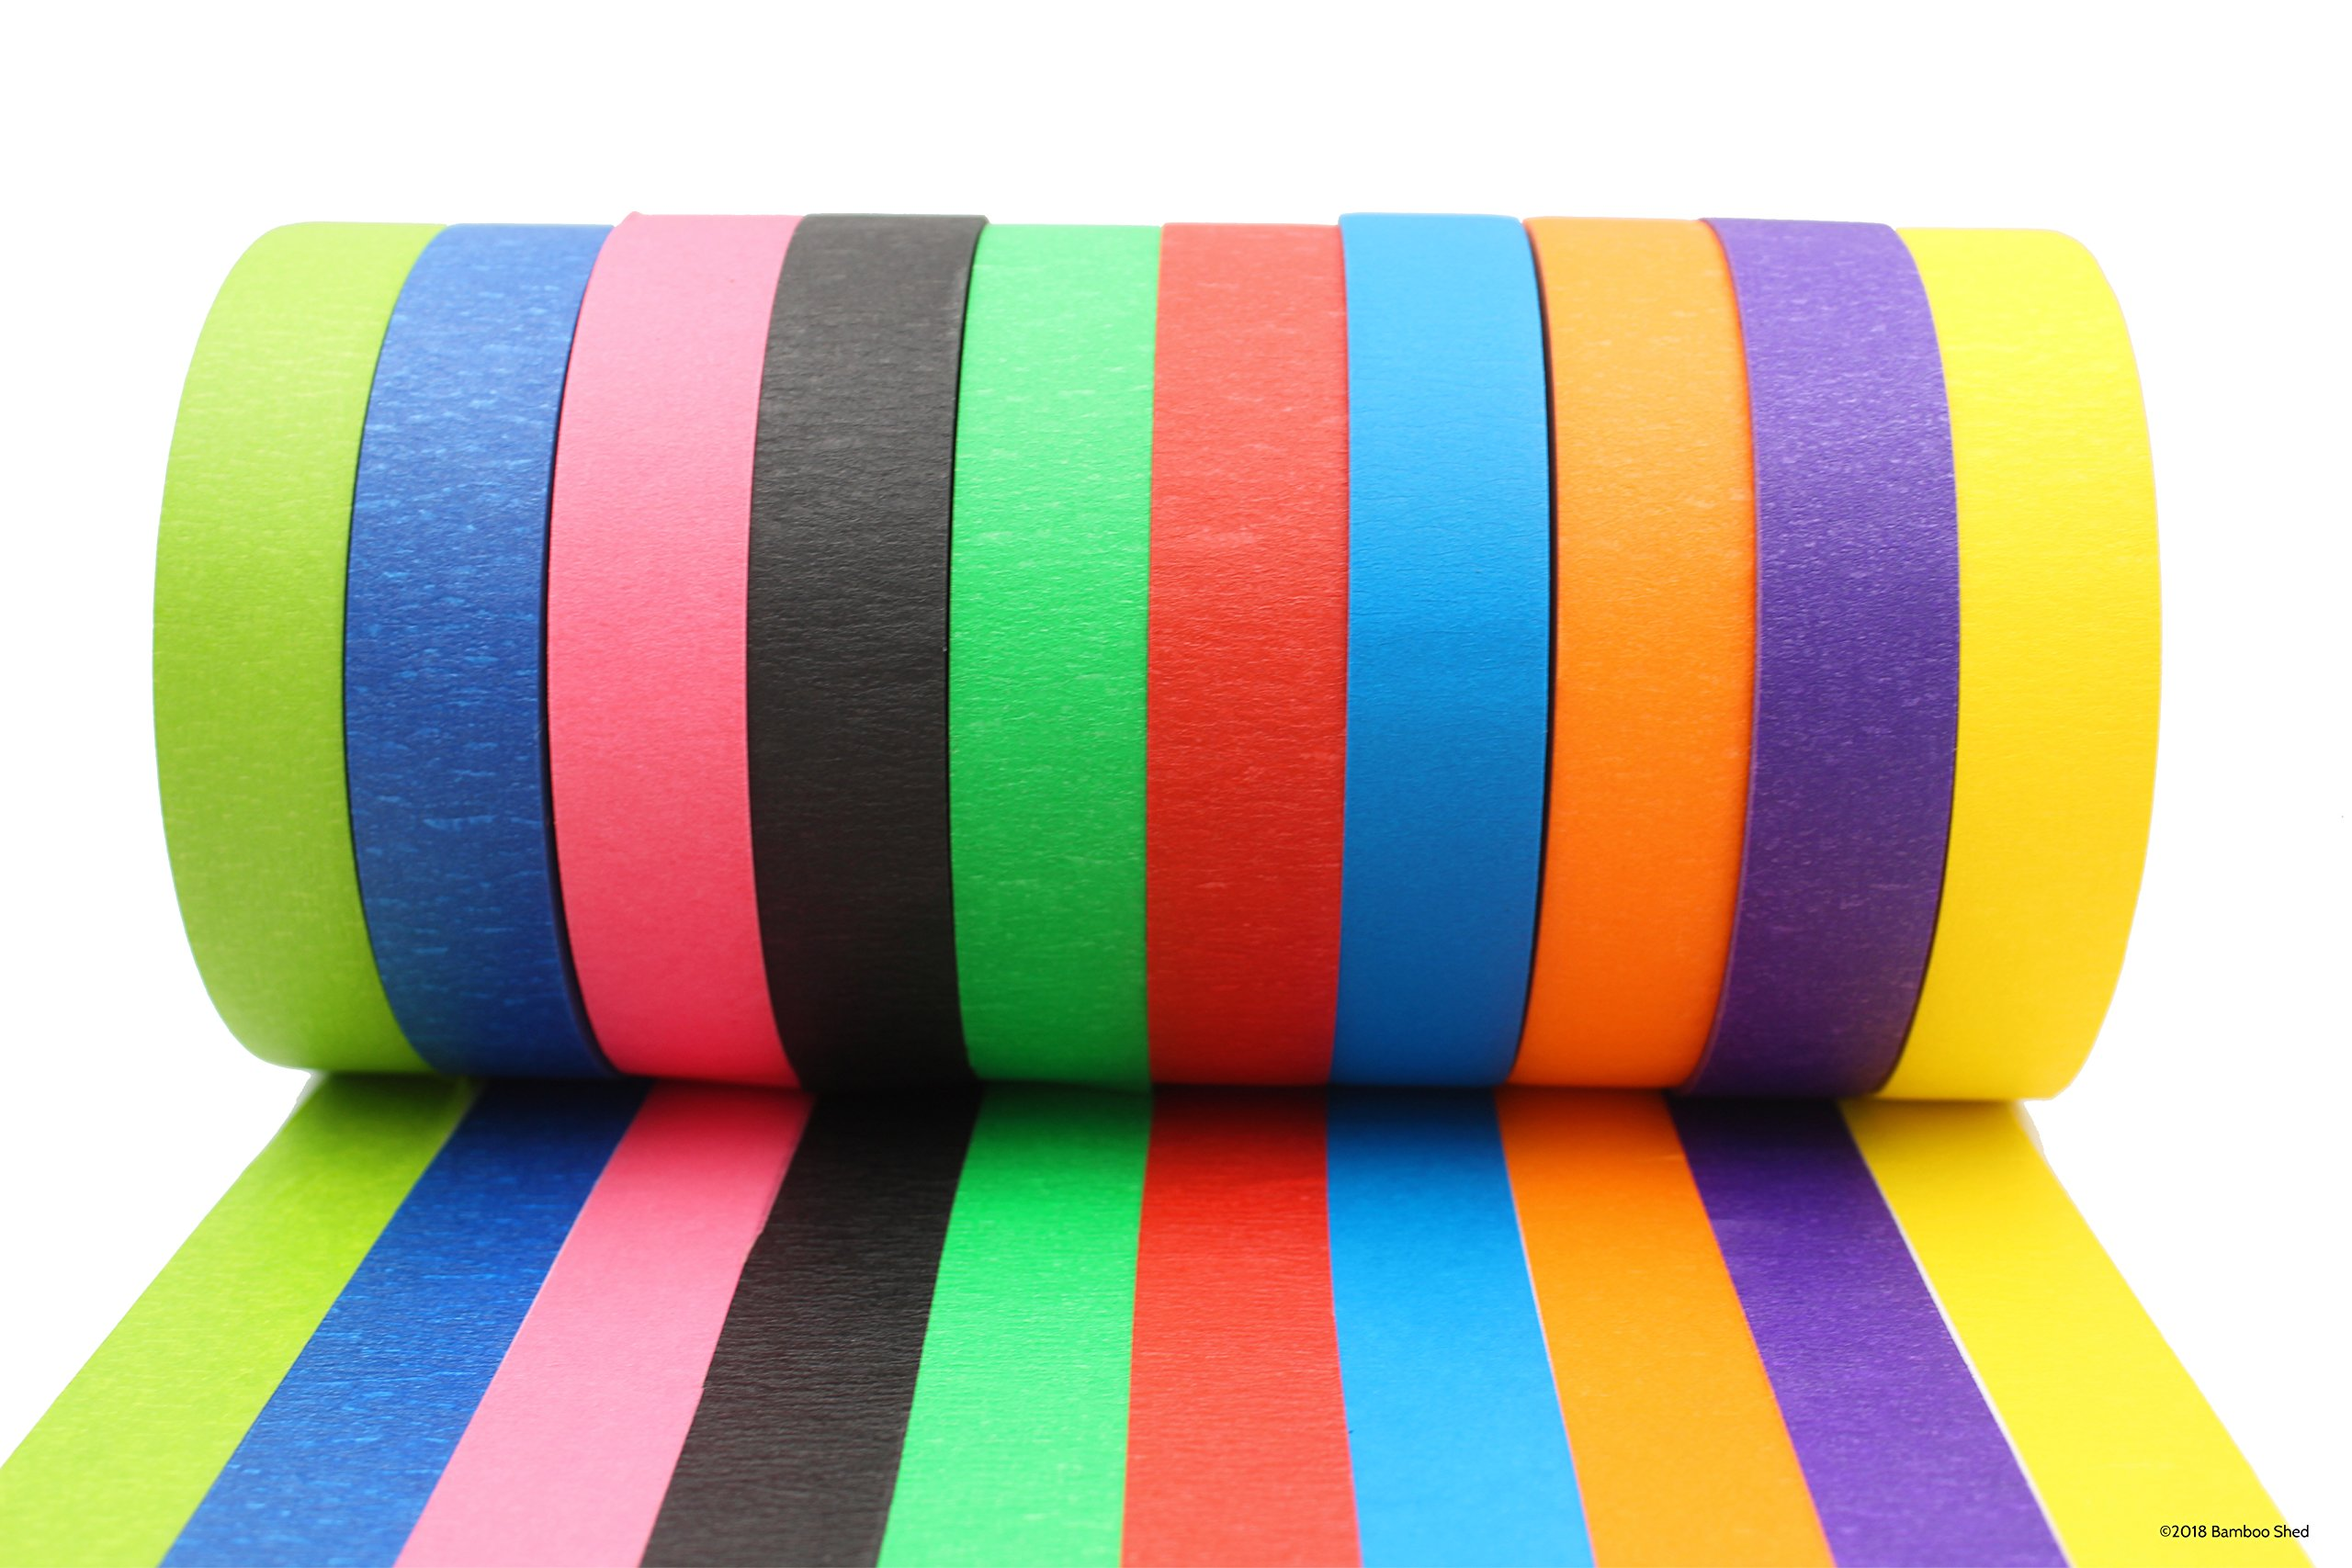 Colored Tape - Decorative Writable Masking Tape - Large Rolls - Classroom Decorations, Art Projects For Kids, Holiday Decorations -  Bright Colors For Color Coding and Colored Labels